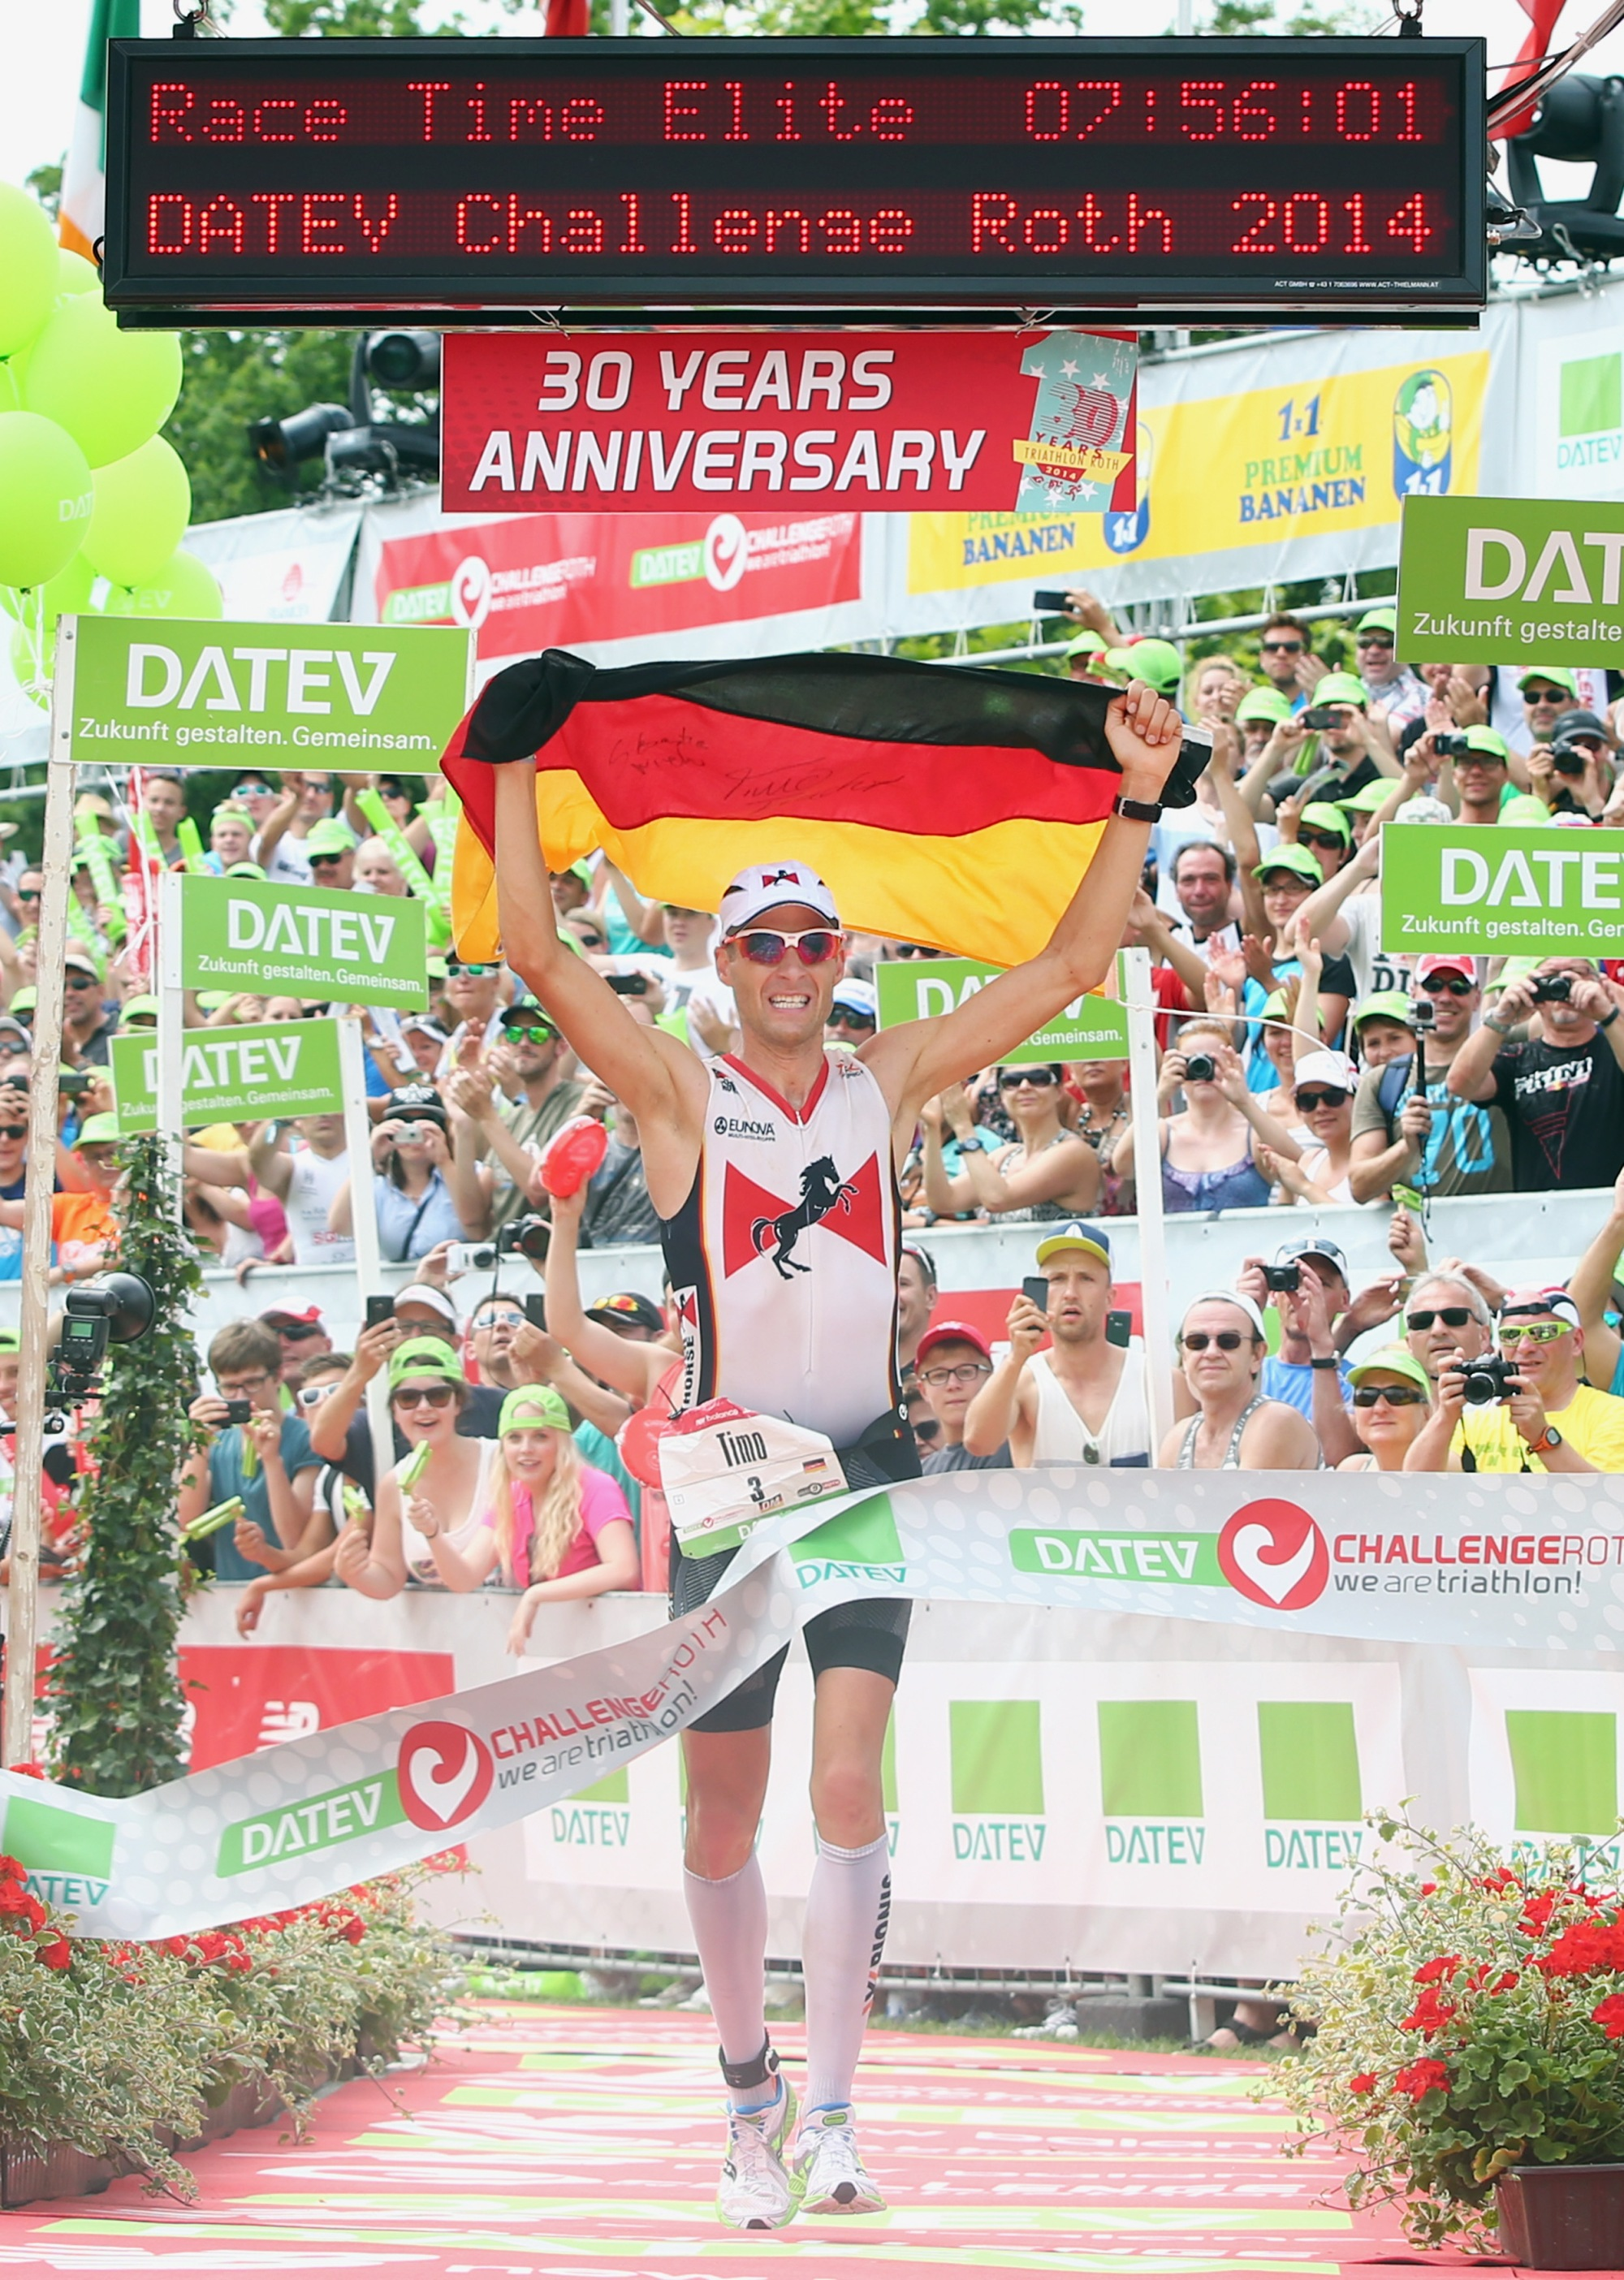 Timo Bracht of Germany celebrates winning the Challenge Roth on July 20, 2014 in Roth, Germany Timo Bracht